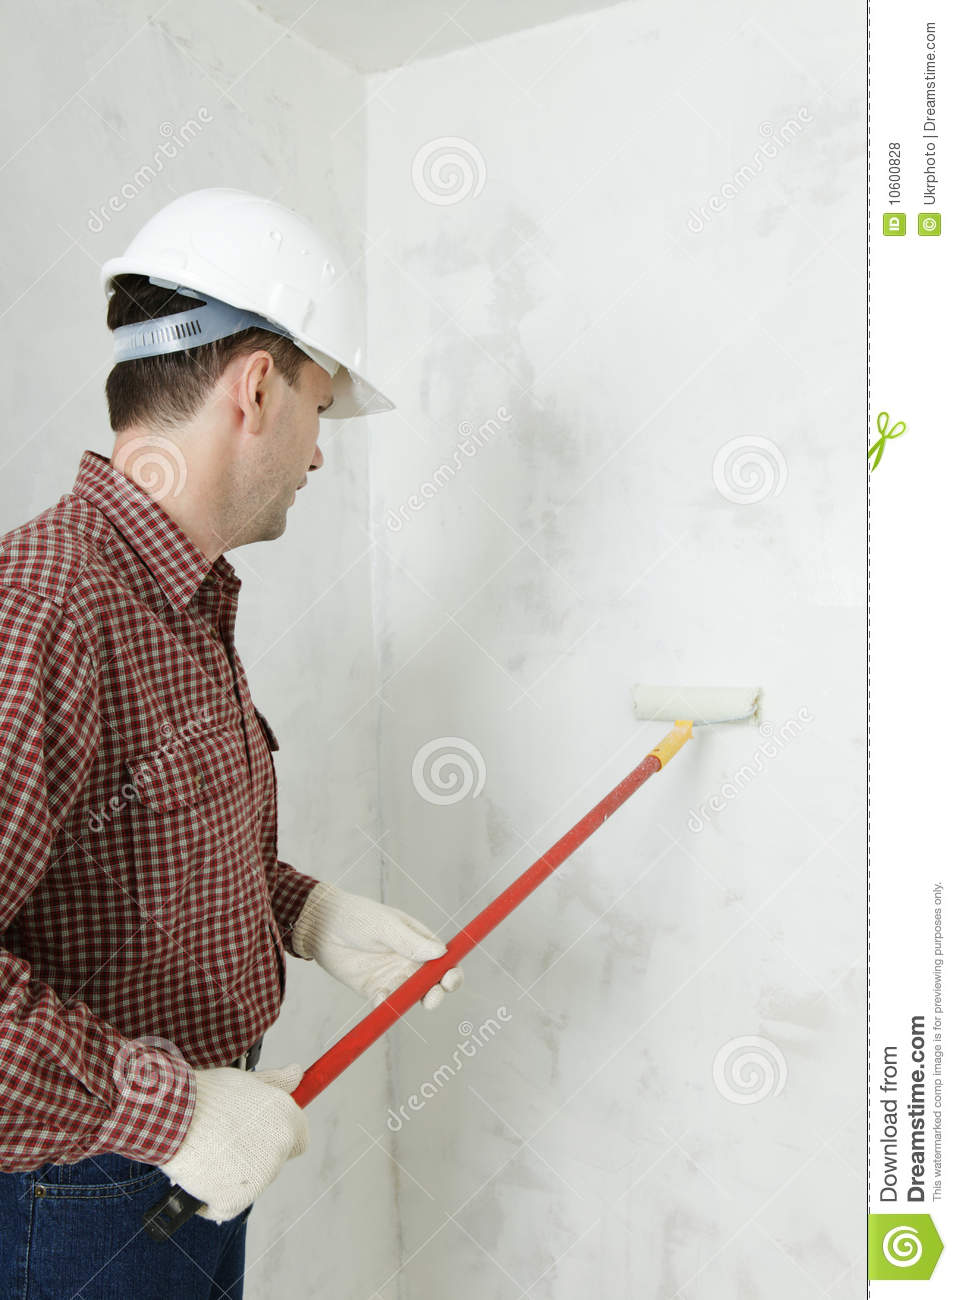 Royalty Free Stock Photos  Painting the wallWorker Painting Wall